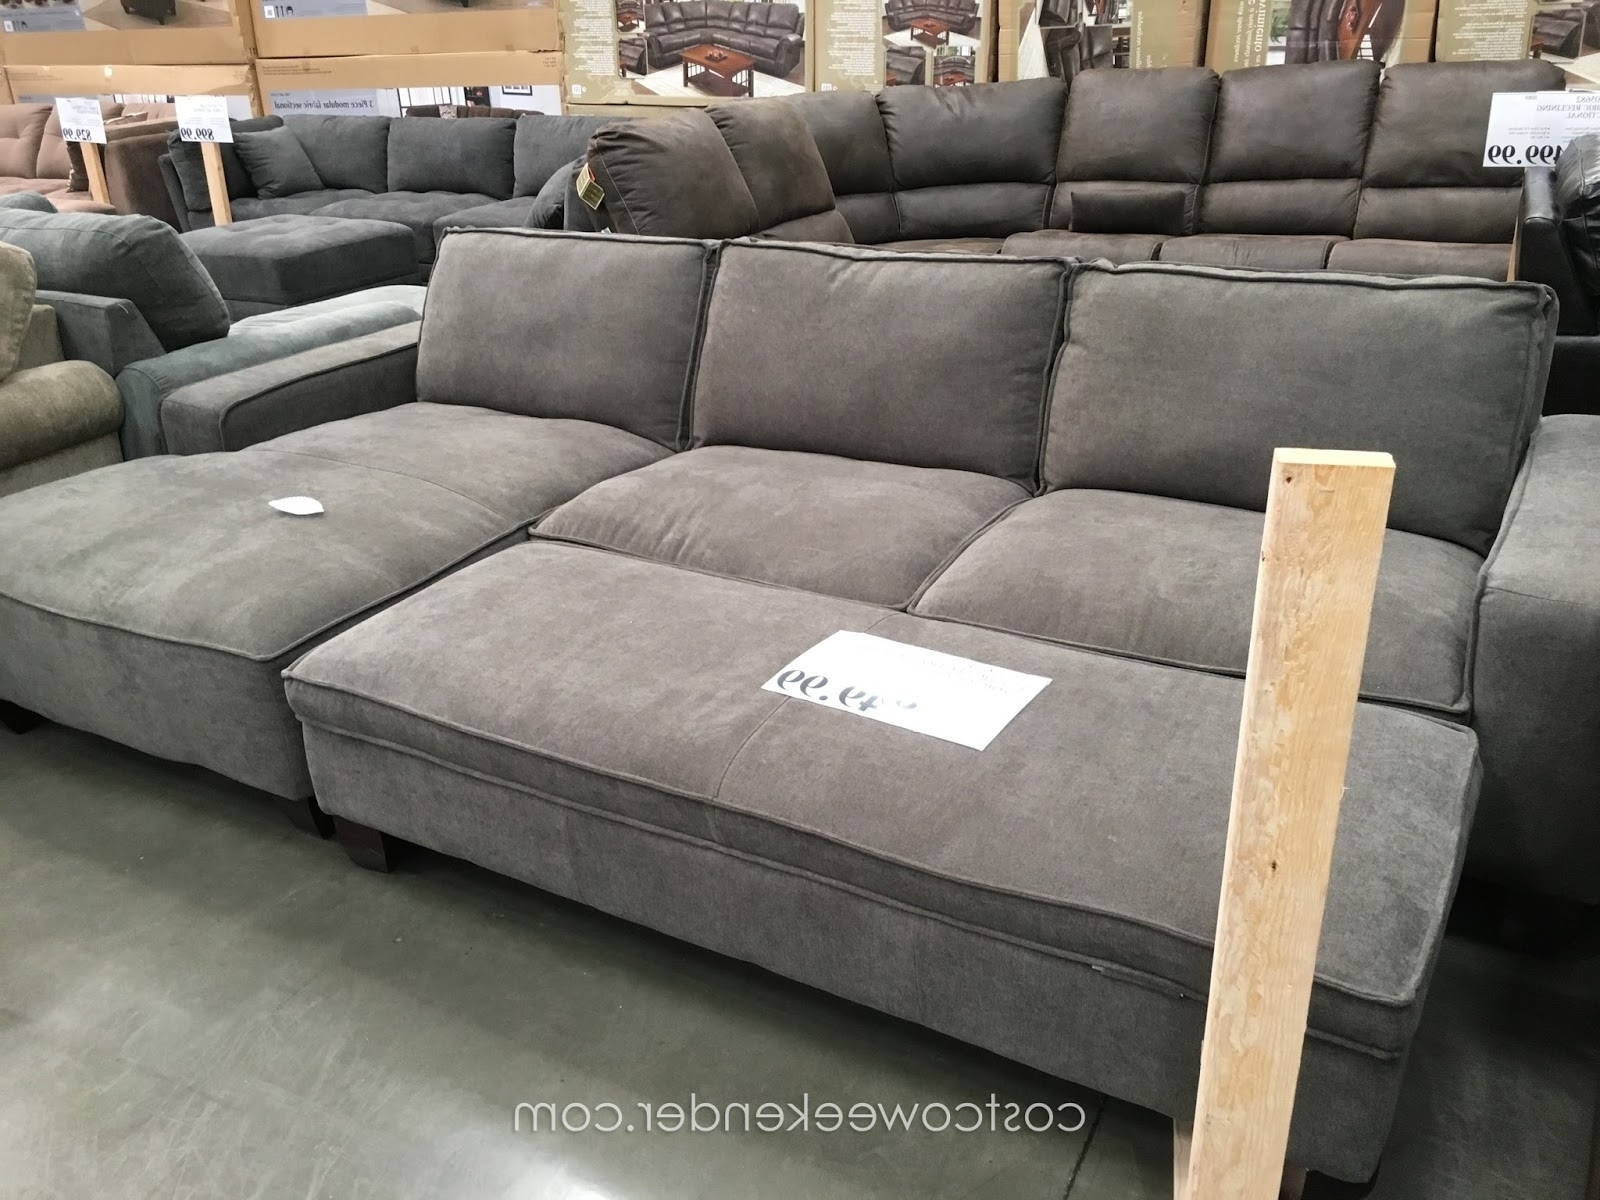 Widely Used Furniture: Couches Costco (View 11 of 15)